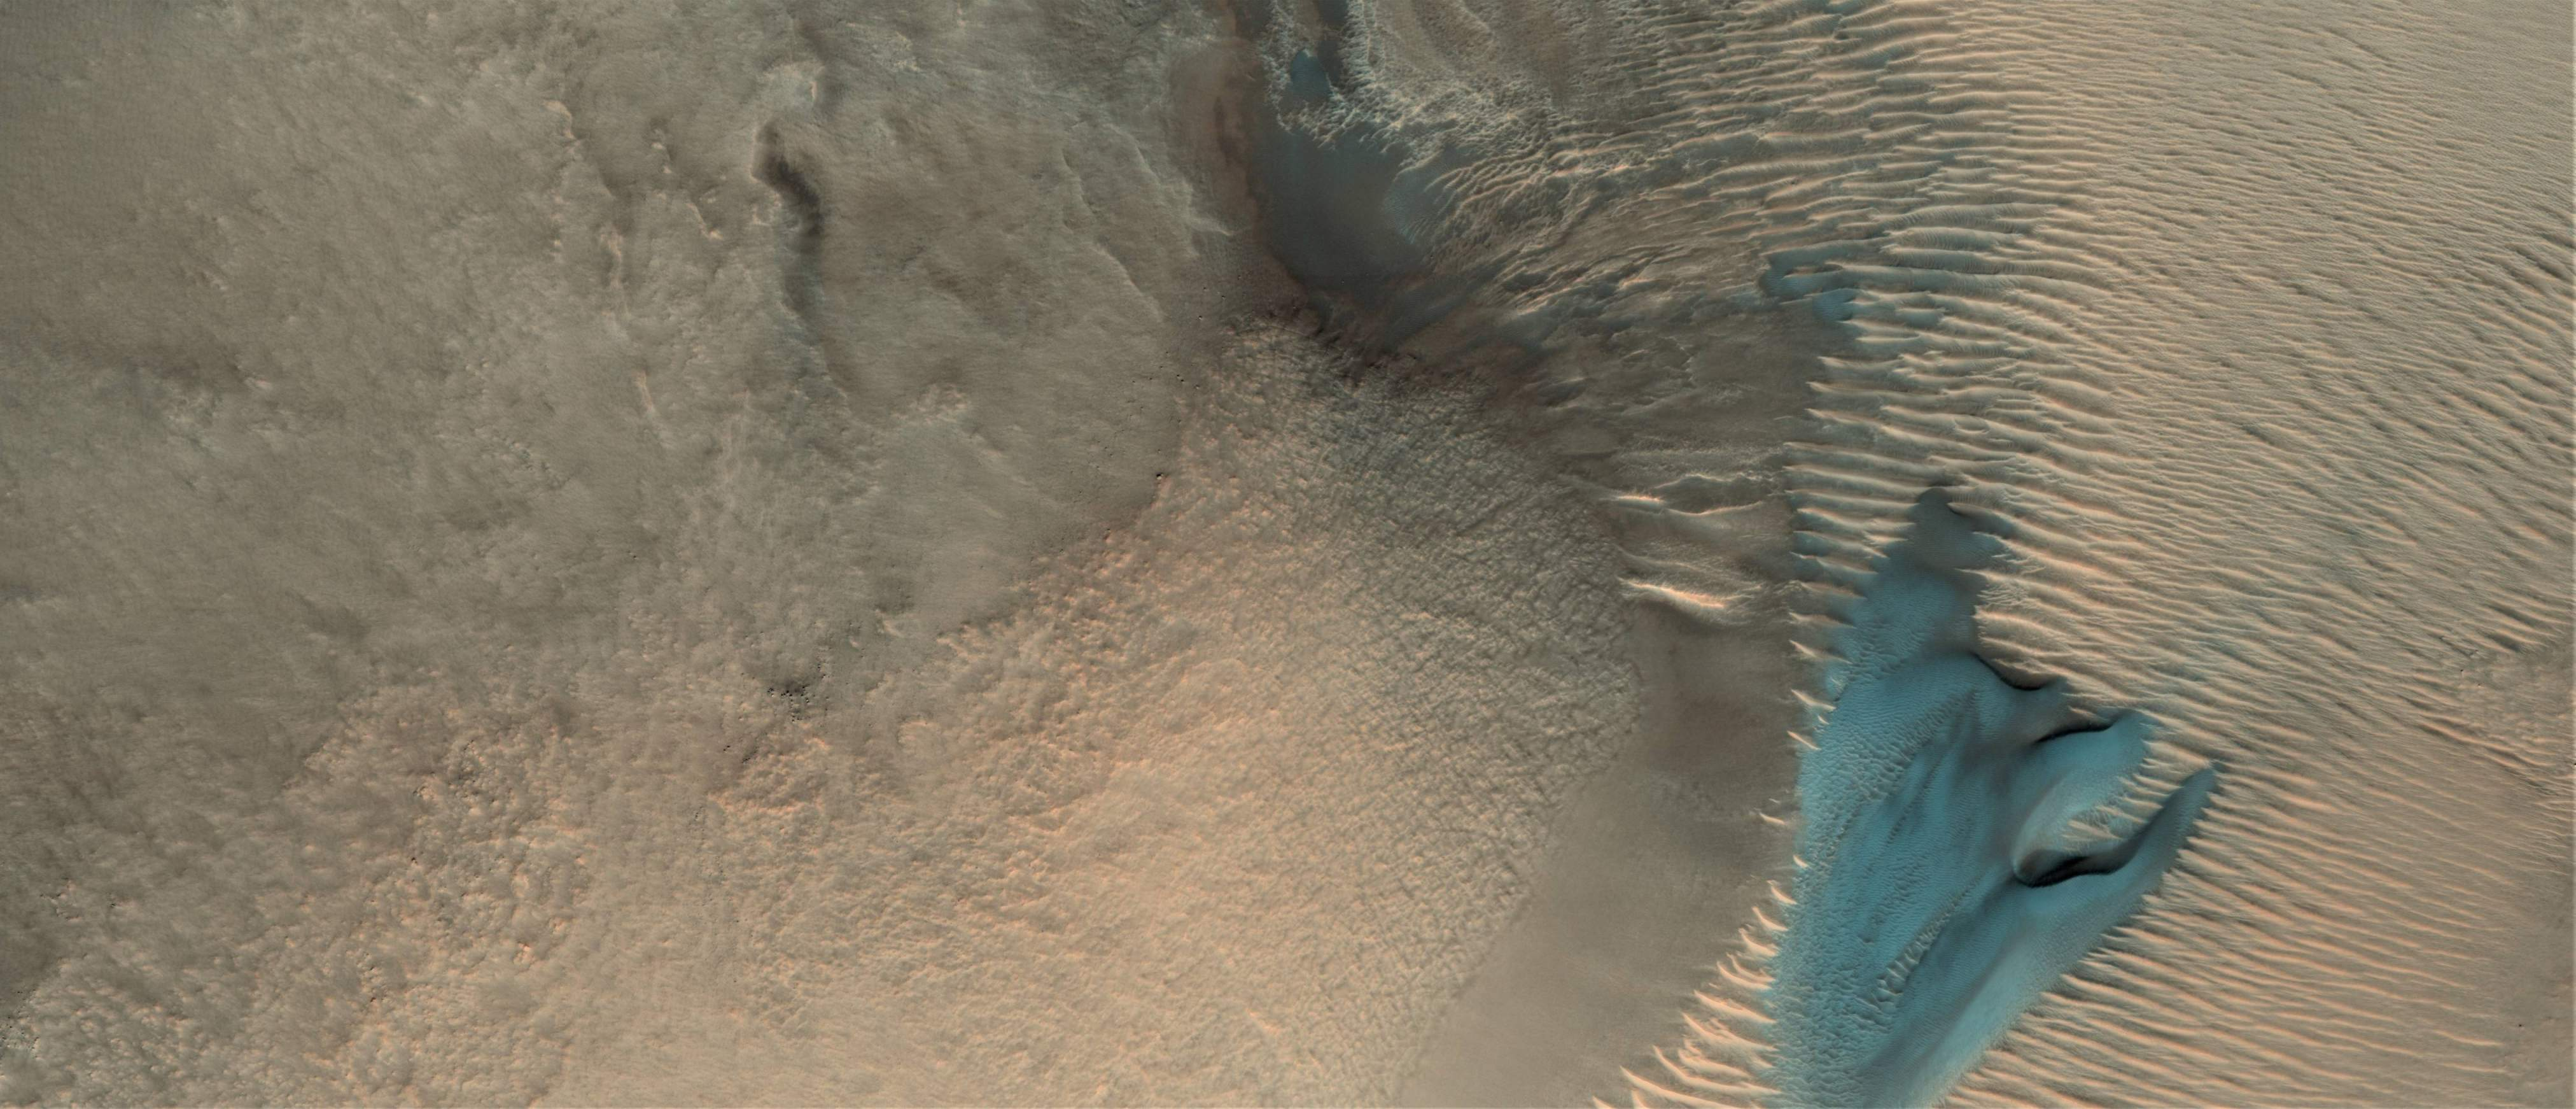 blue dune 01242018 (NASA MRO) overview 2(c)